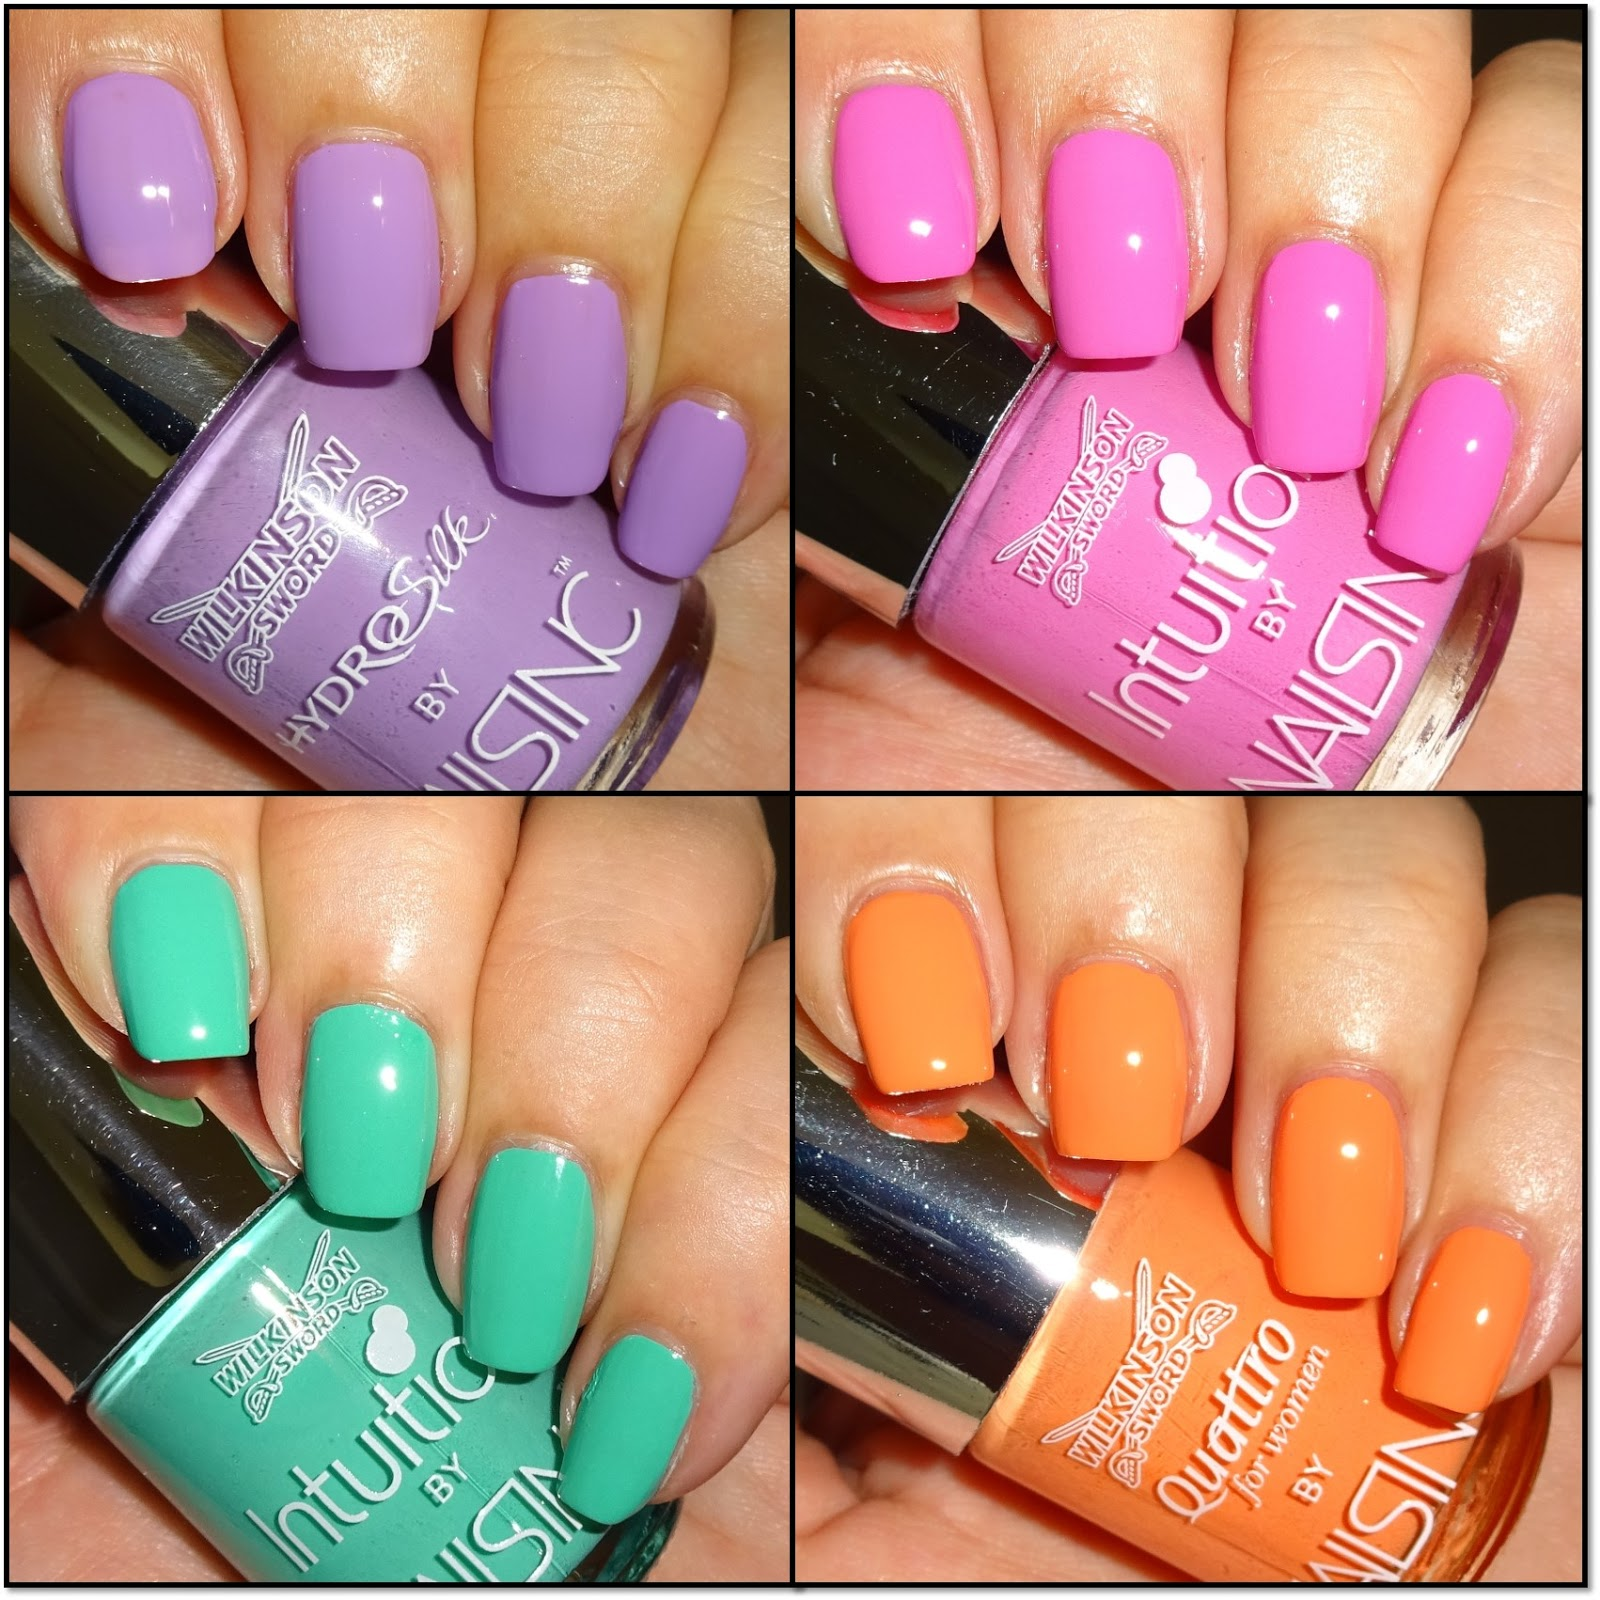 Wendy\'s Delights: Free Nails Inc with Wilkinson Sword for Women